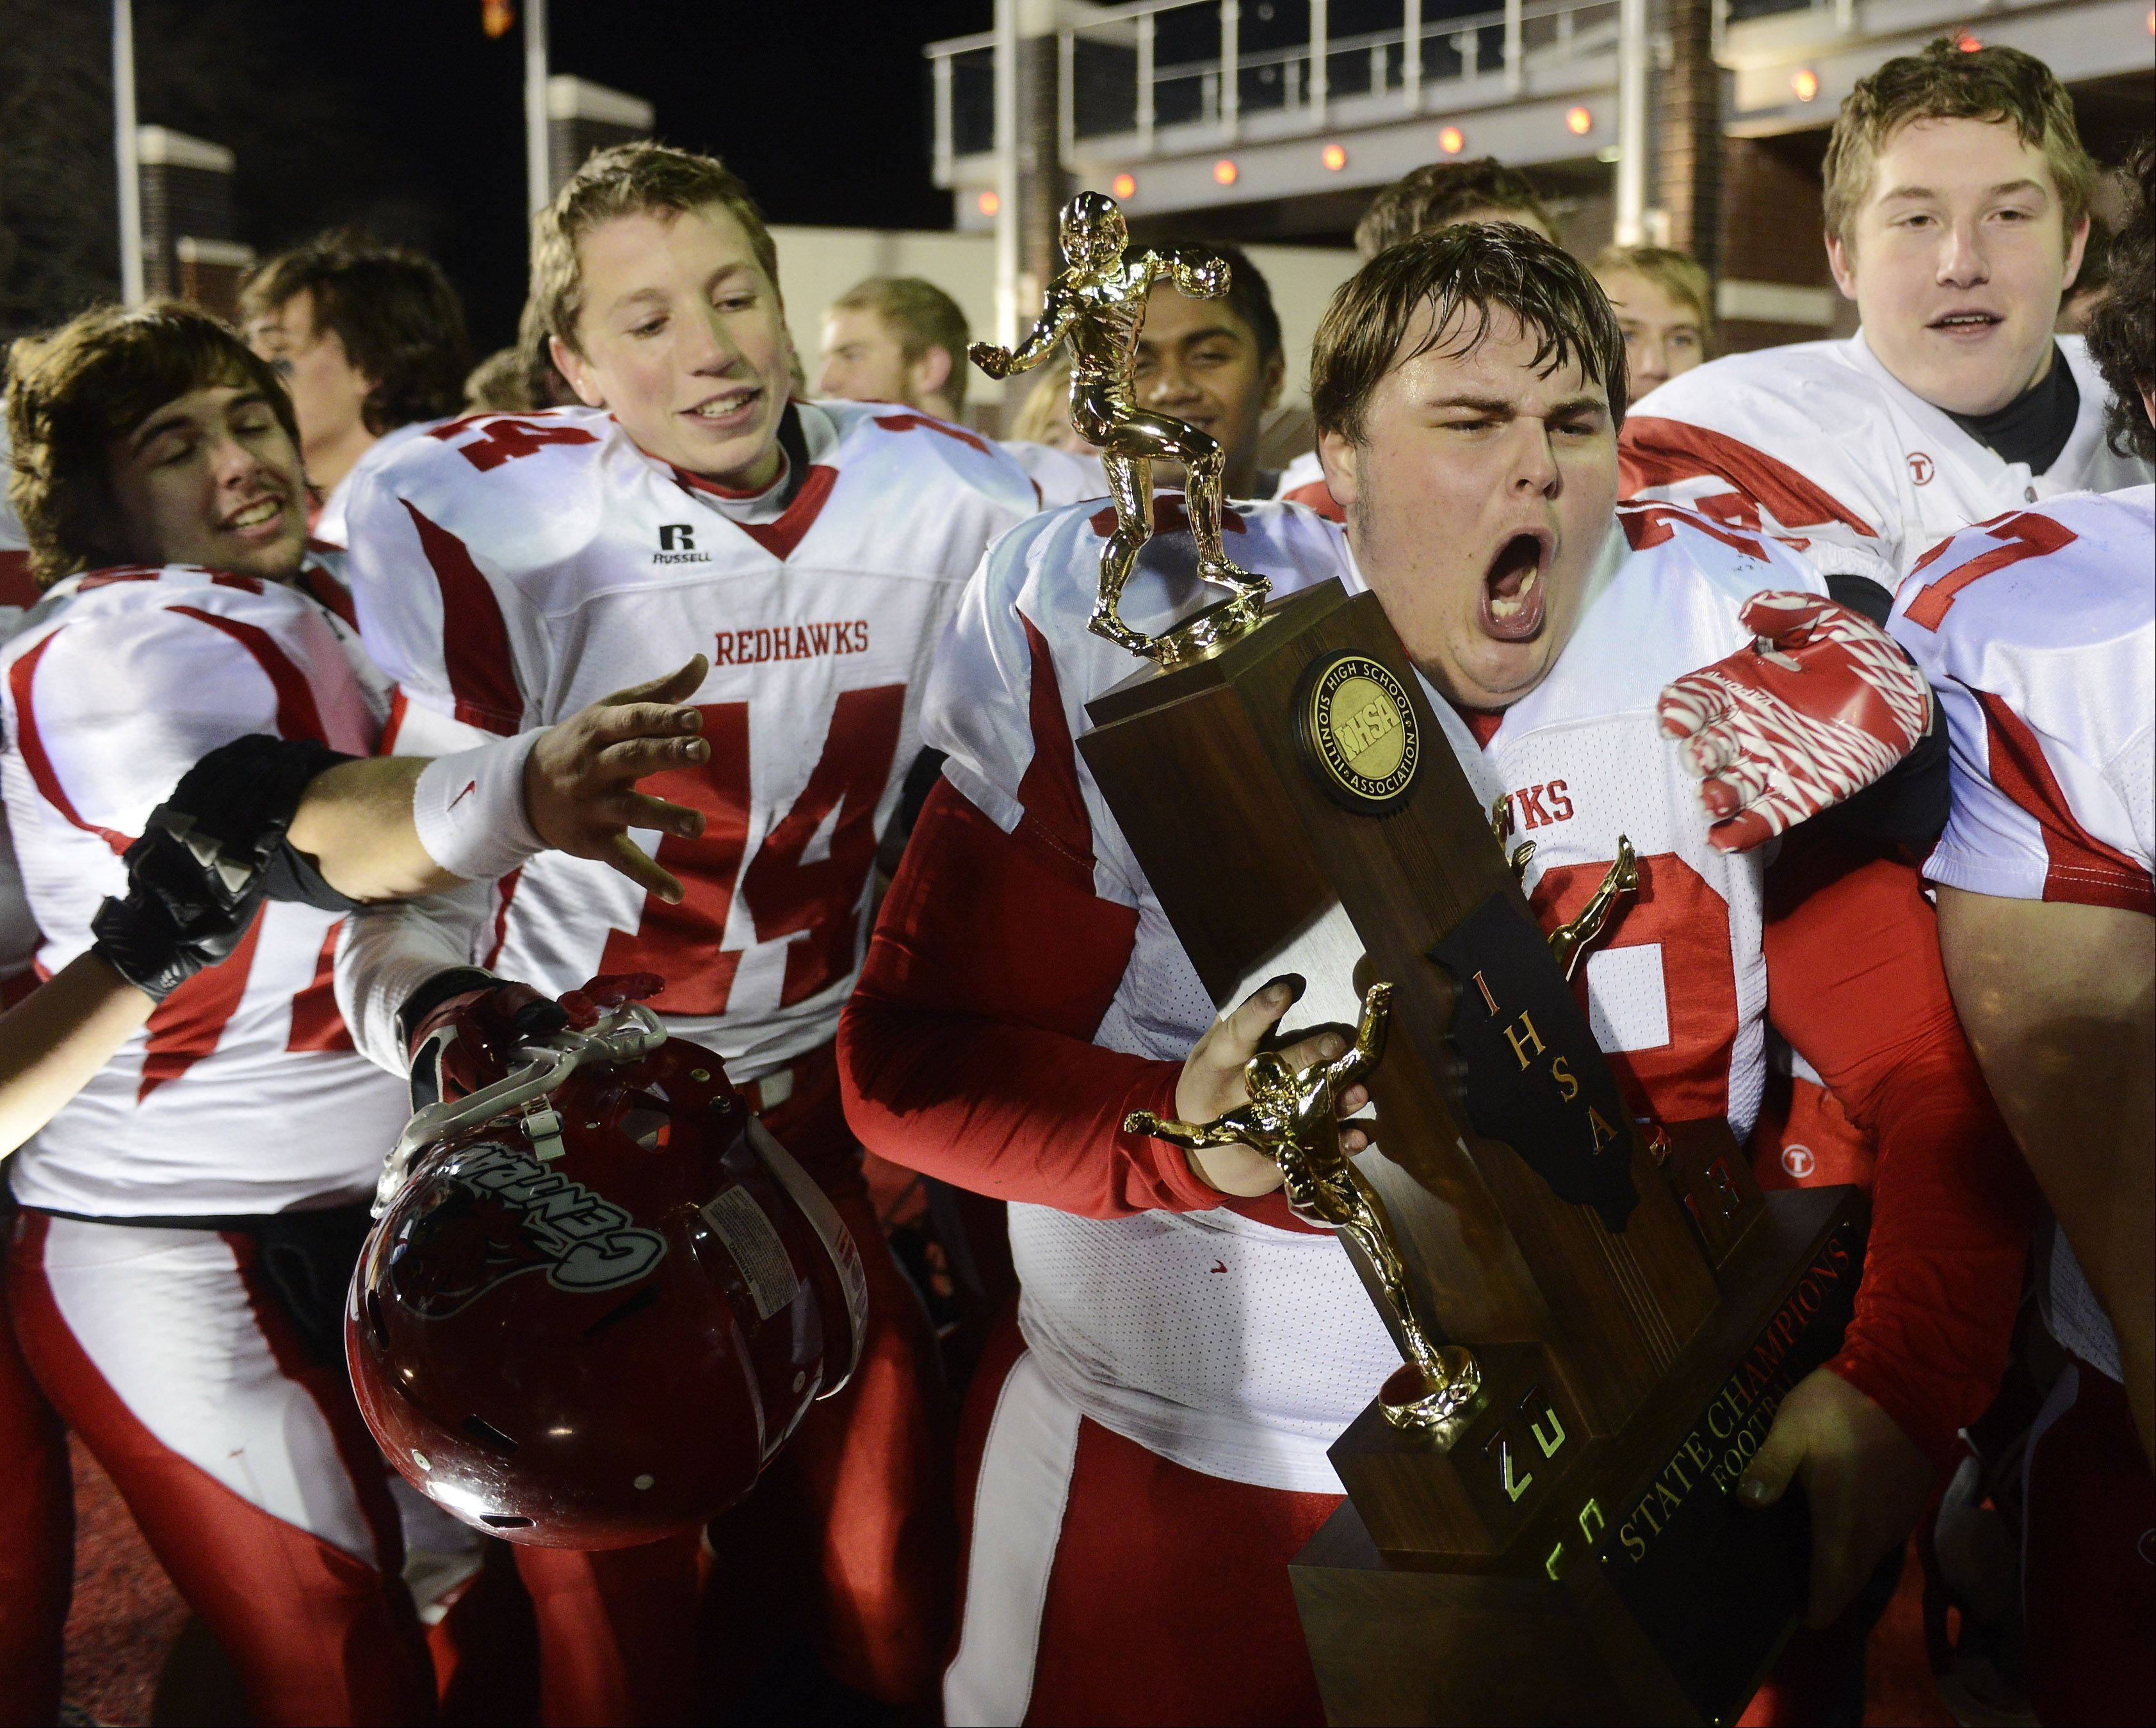 Naperville Central's Chris Wenkel holds the team's championship trophy after their victory over Loyola during the Class 8A football final in DeKalb Saturday.